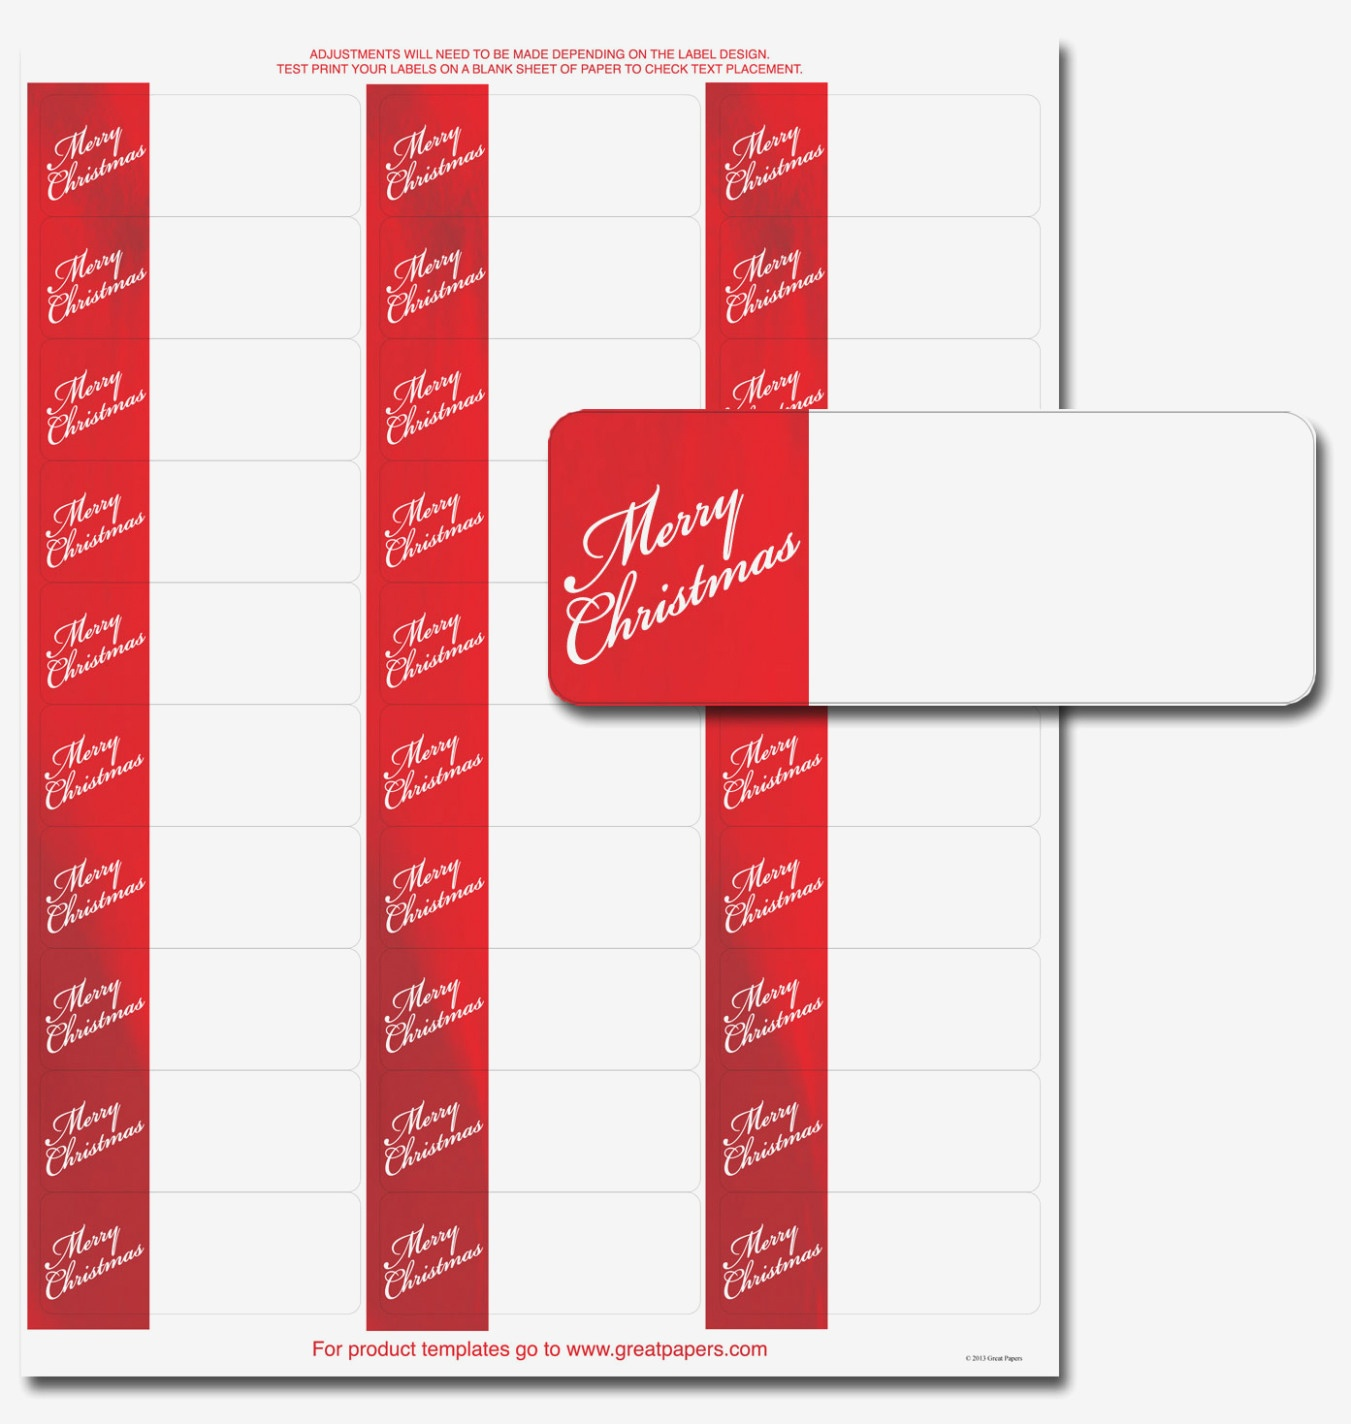 Address Labels 15 Per Sheet Unique Free Christmas Return Address - Free Printable Christmas Address Labels Avery 5160